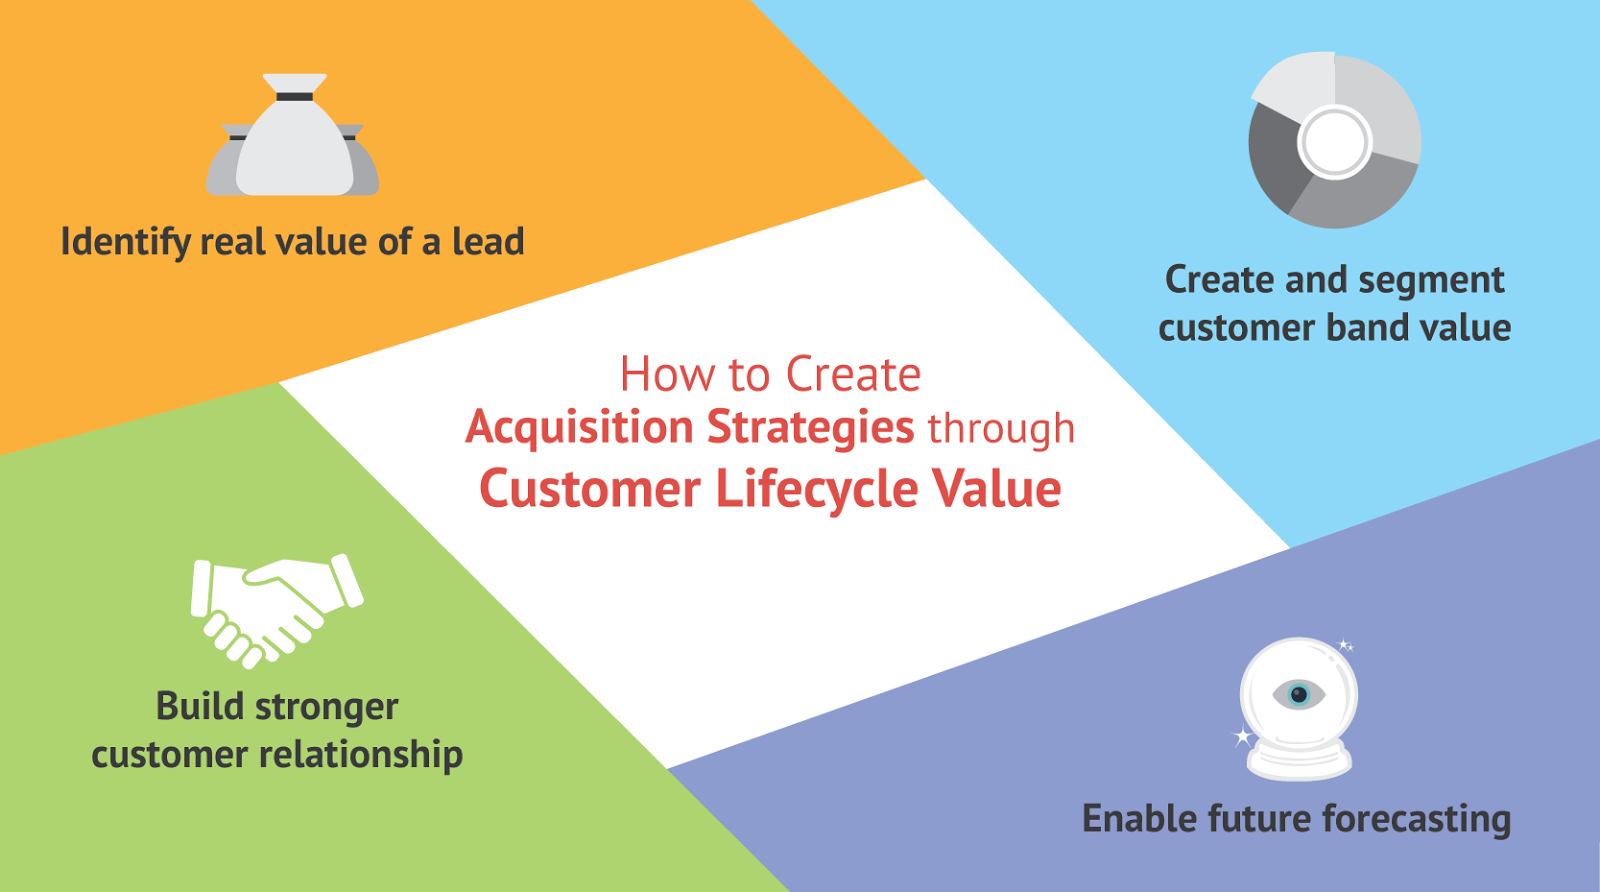 How to Create Acquisition Strategies through Customer Lifecycle Value?